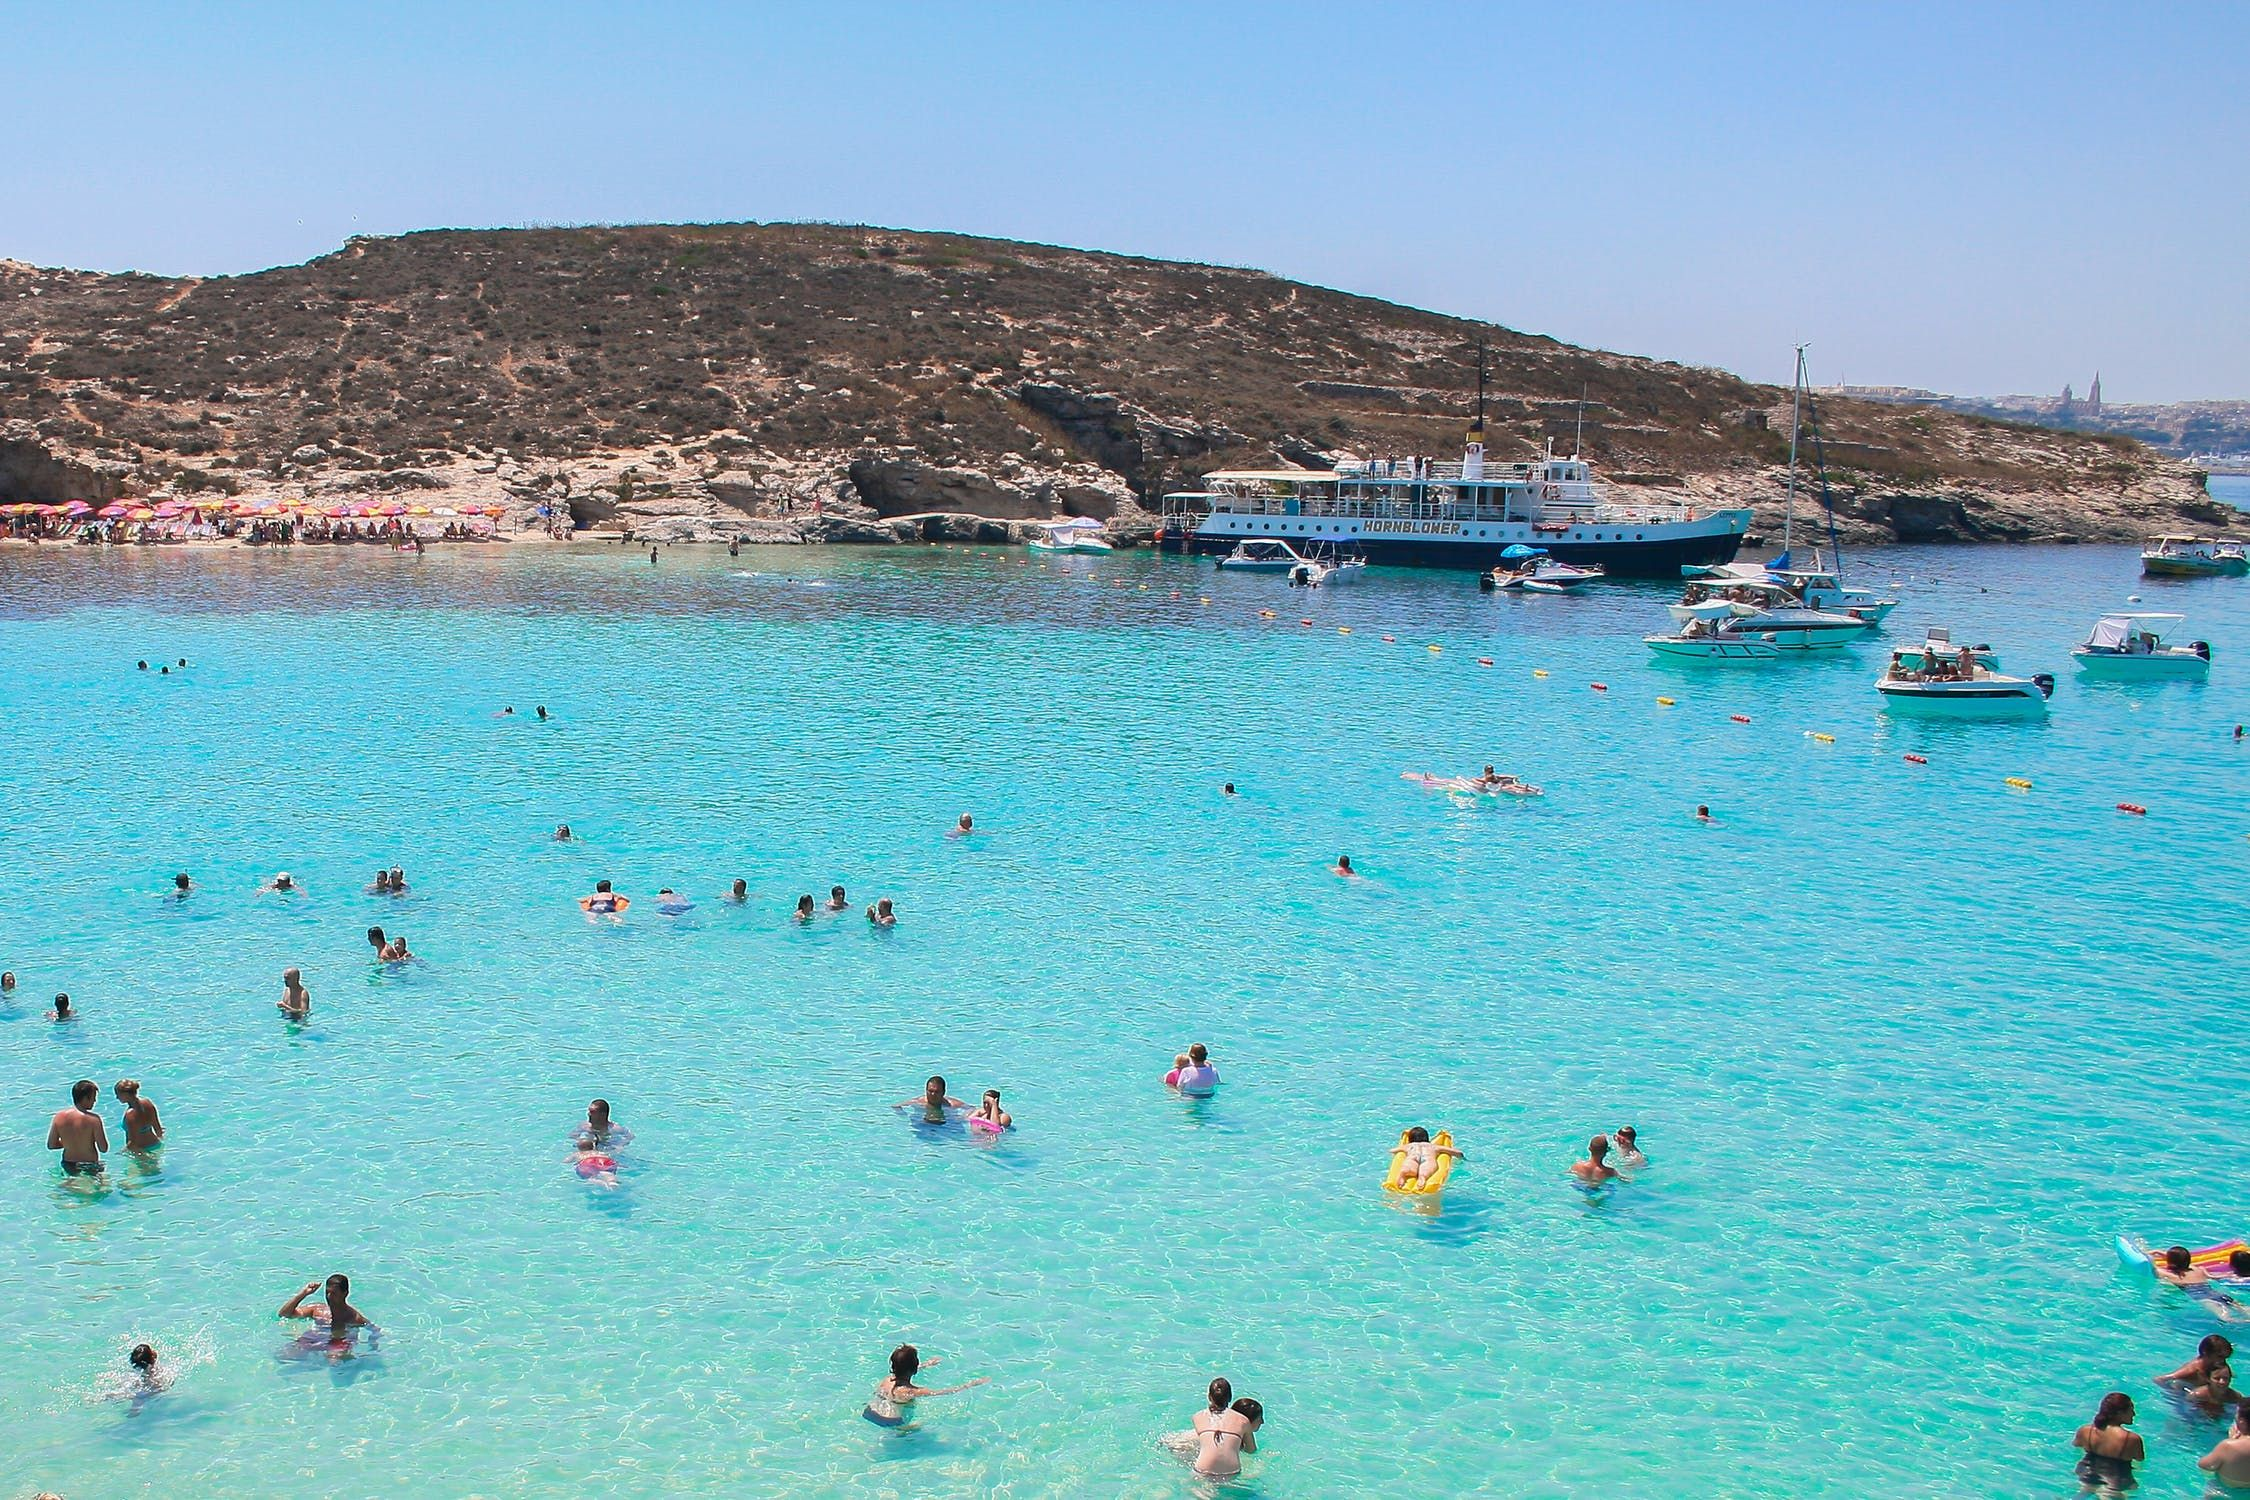 The Blue Lagoon makes Malta a beautifully exotic vacation destination.